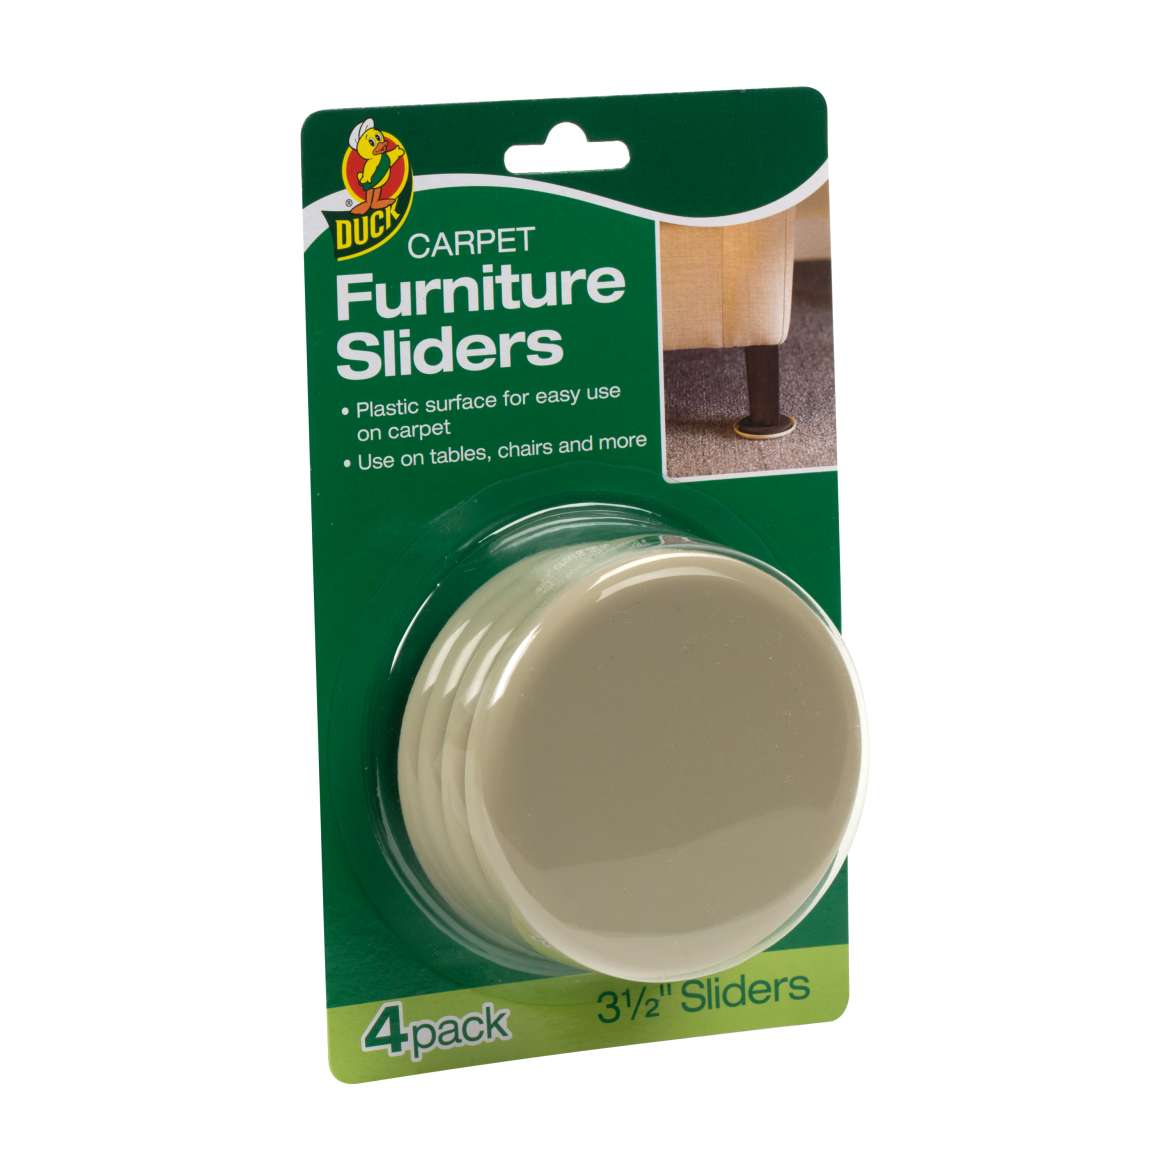 Plastic Carpet Furniture Sliders Image